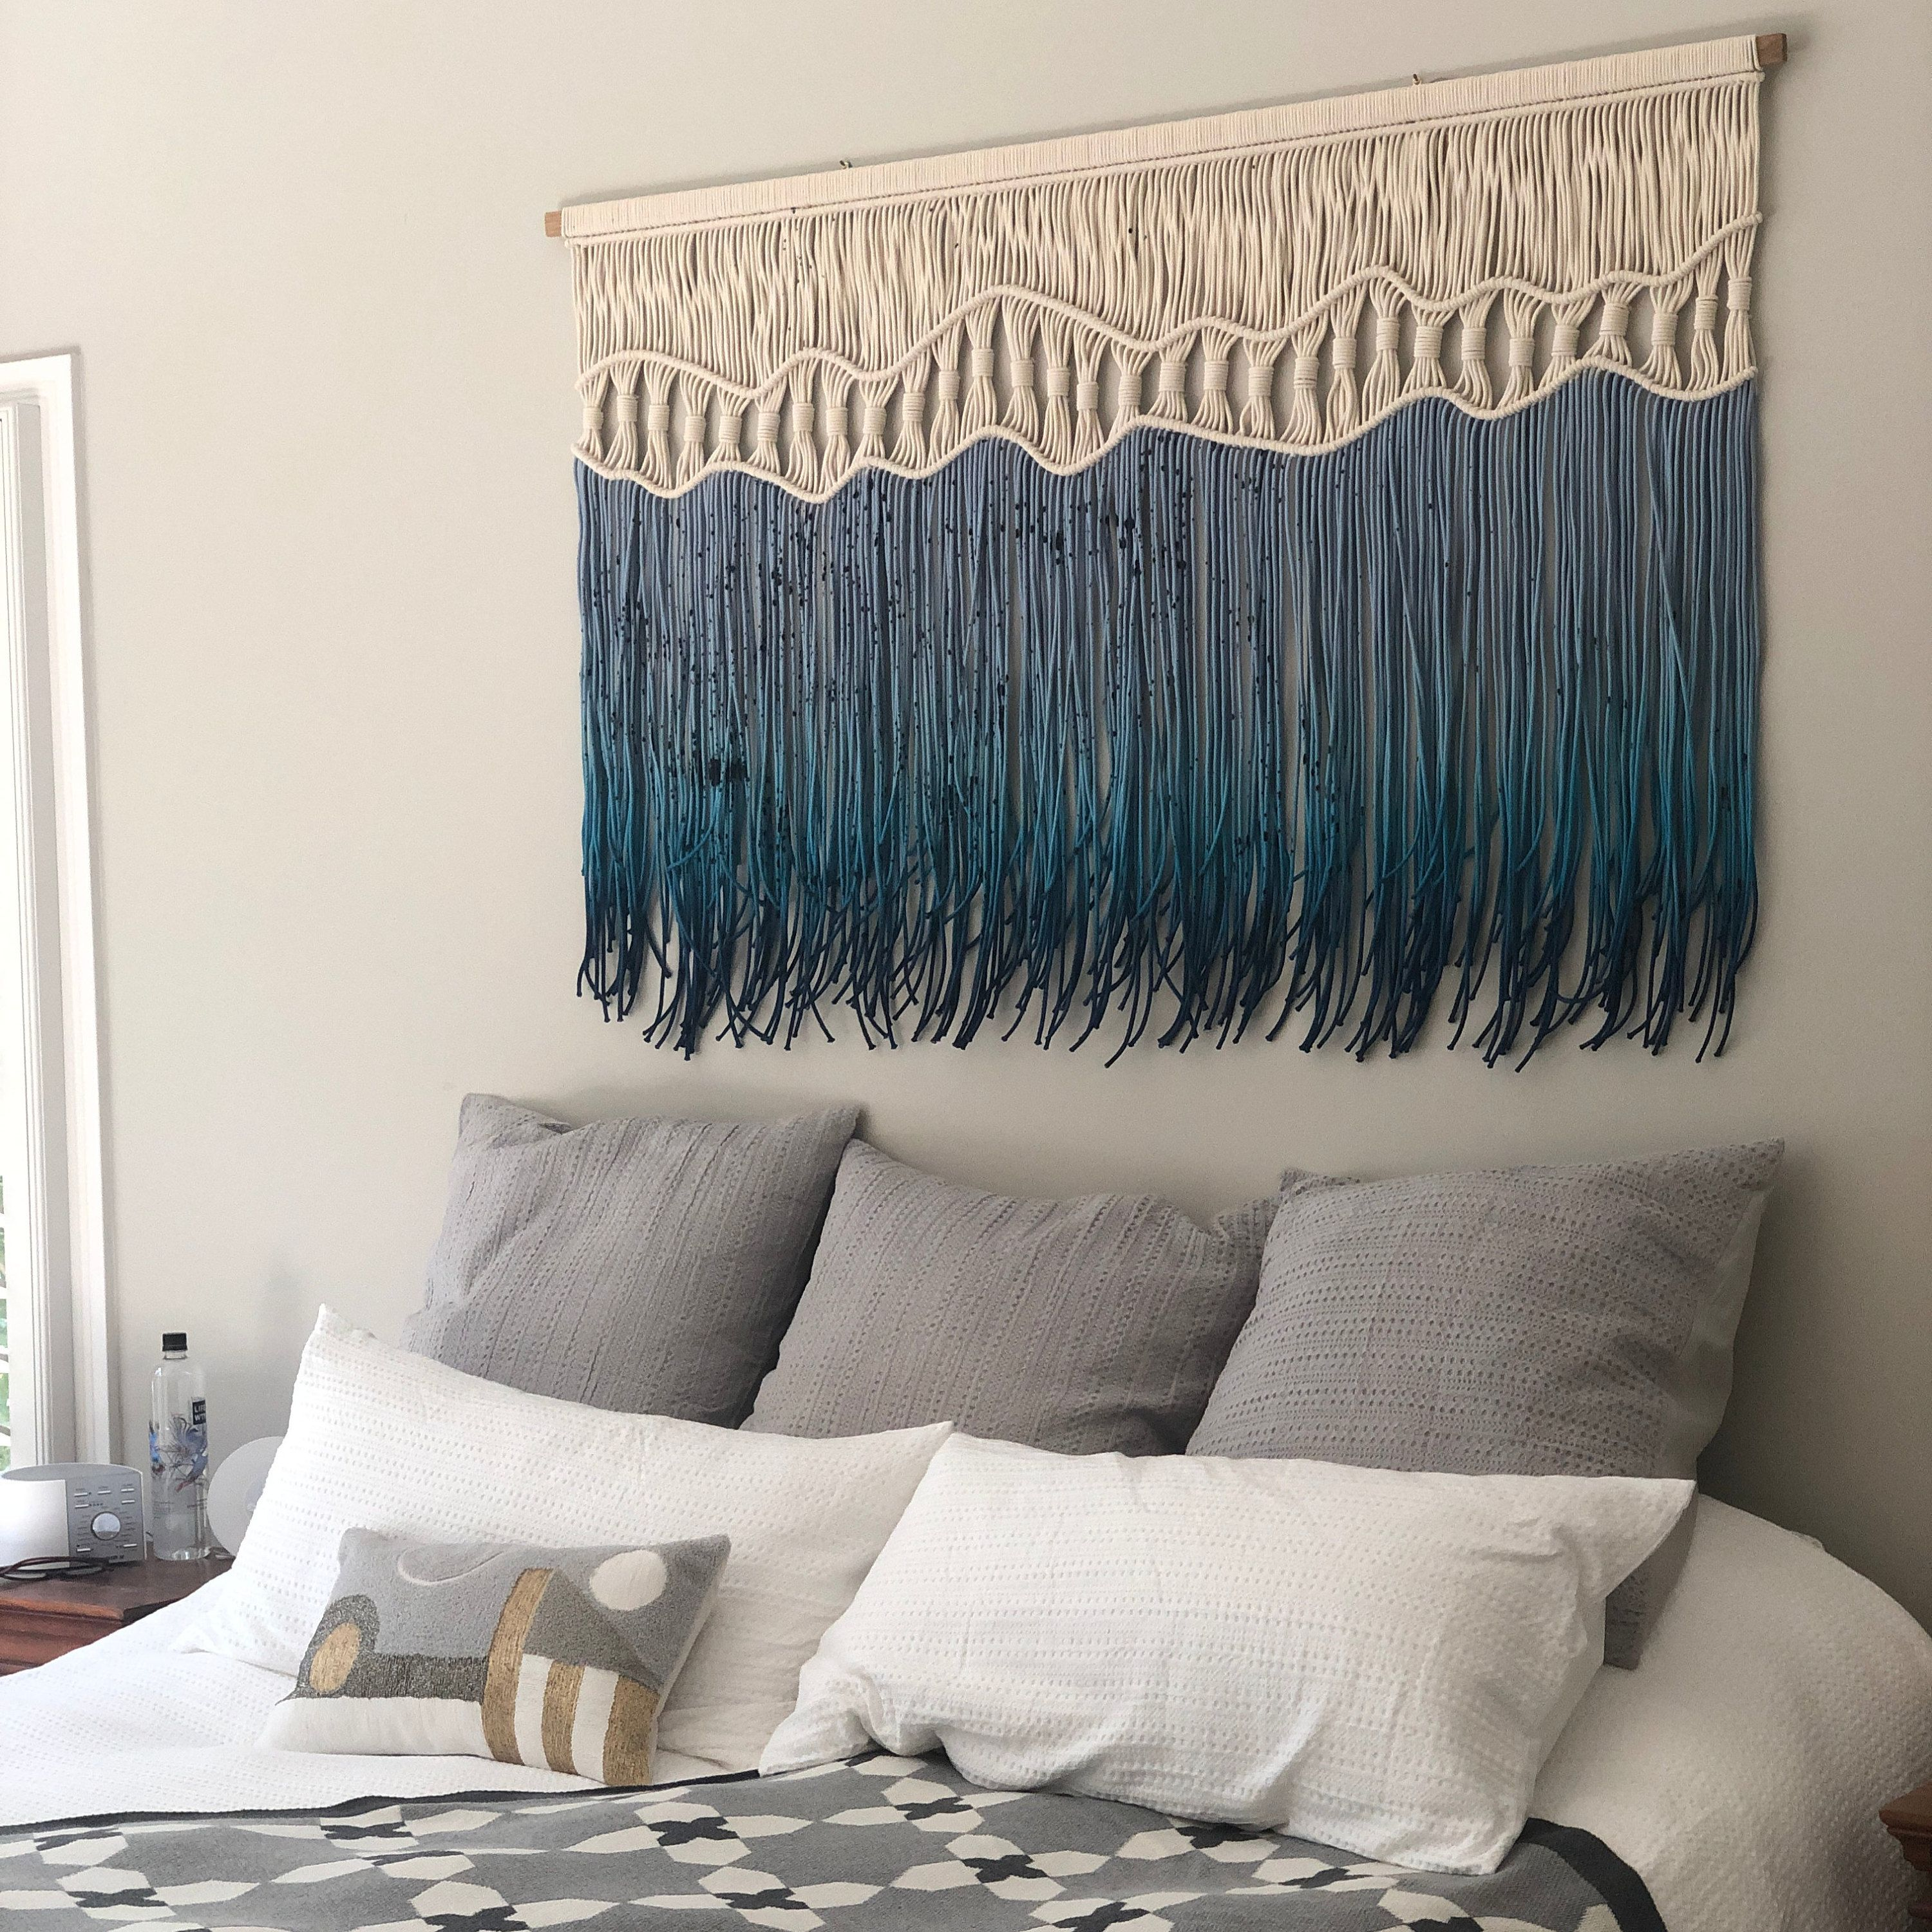 Extra Large Macrame Wall Hanging Woven Wall Art Big Fiber Etsy Macrame Wall Hanging Woven Wall Hanging Large Macrame Wall Hanging